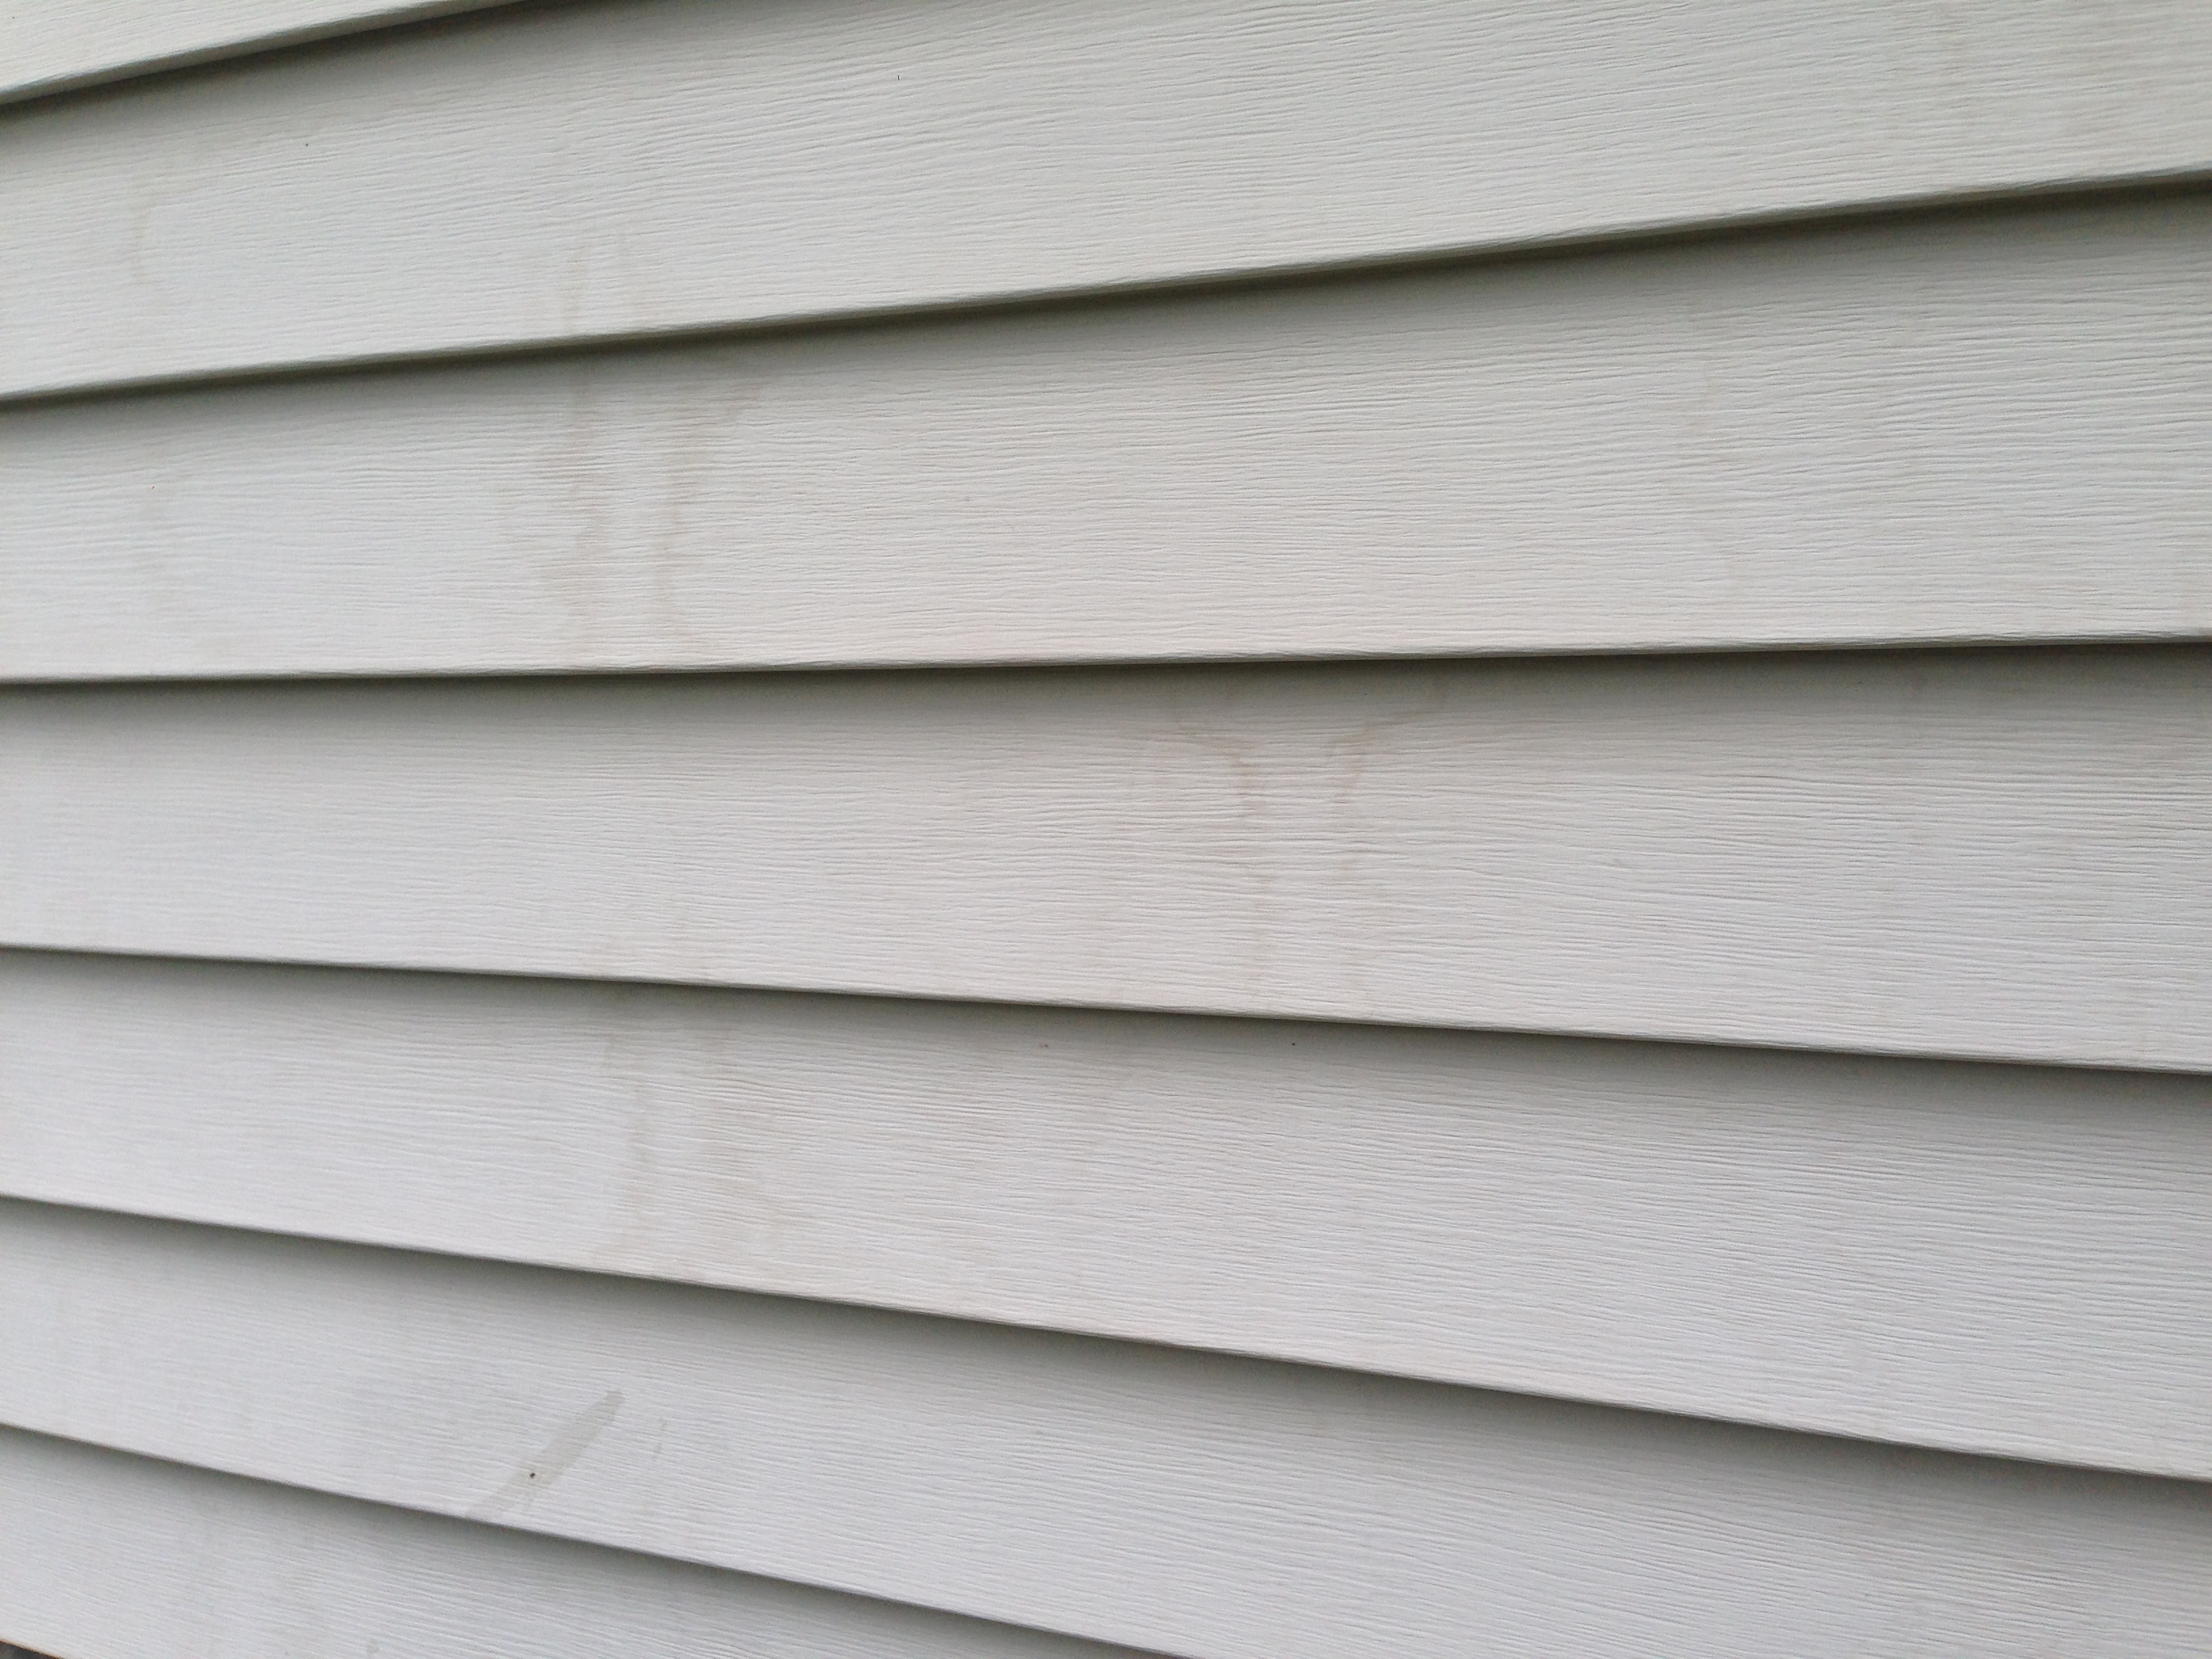 Uneven Drying On Oxidized Vinyl Siding Add Ons Window